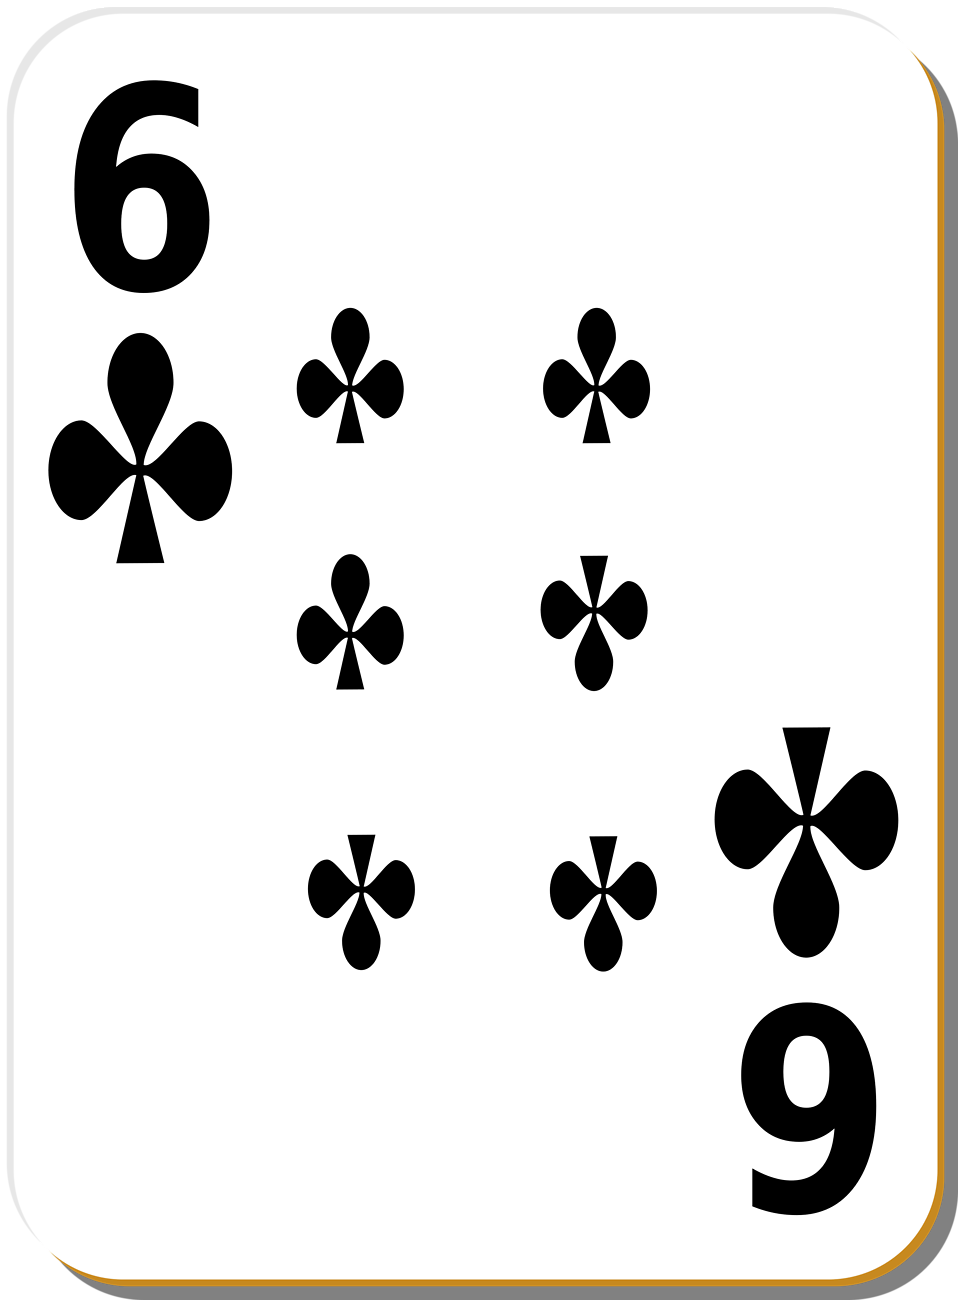 Free Stock Photo: Illustration of a Six of Clubs playing card with a ...